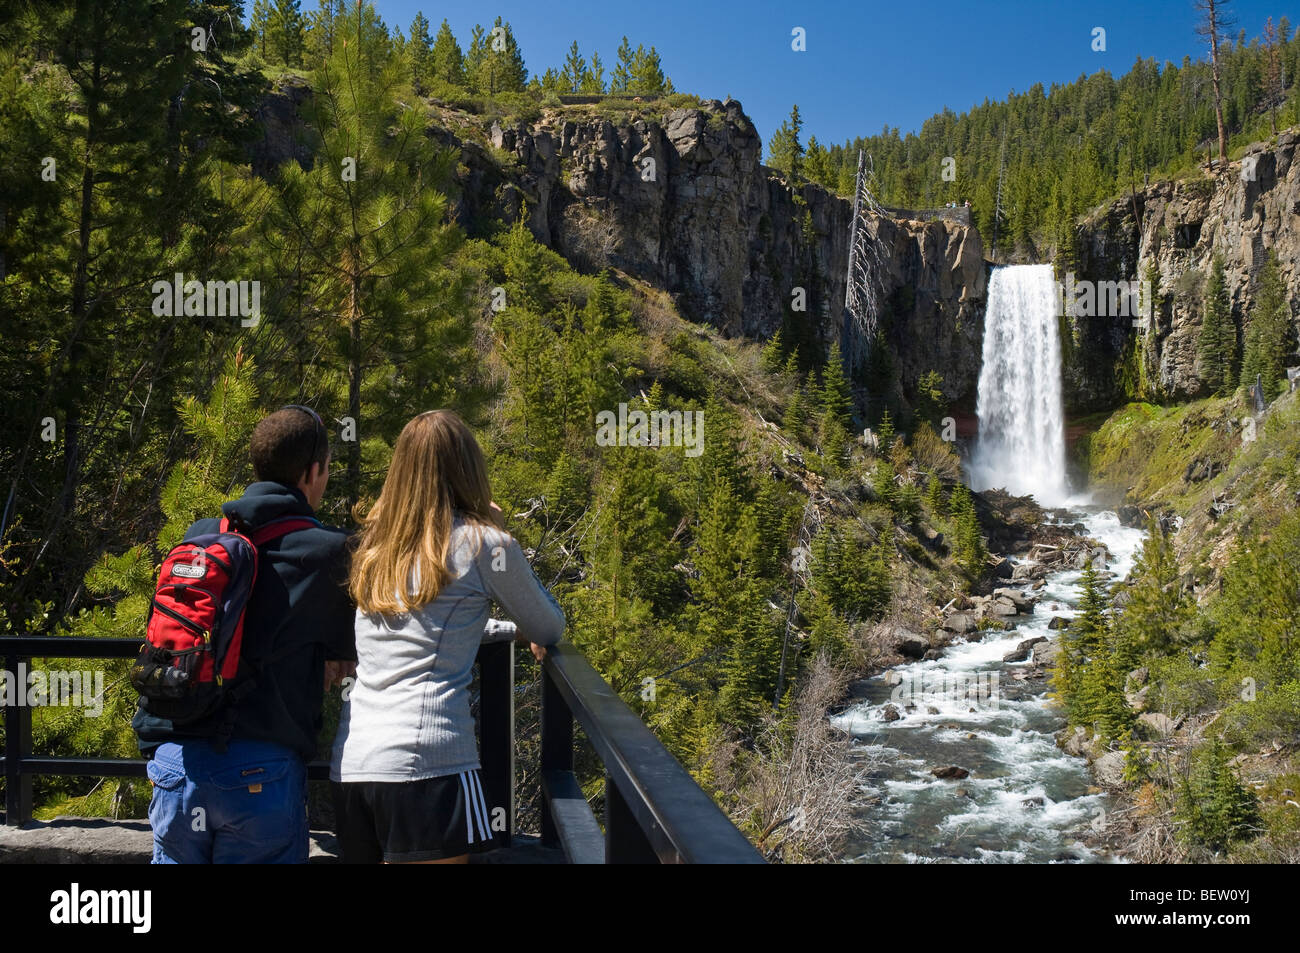 Couple at Tumalo Falls viewpoint, Deschutes National Forest, central Oregon. - Stock Image